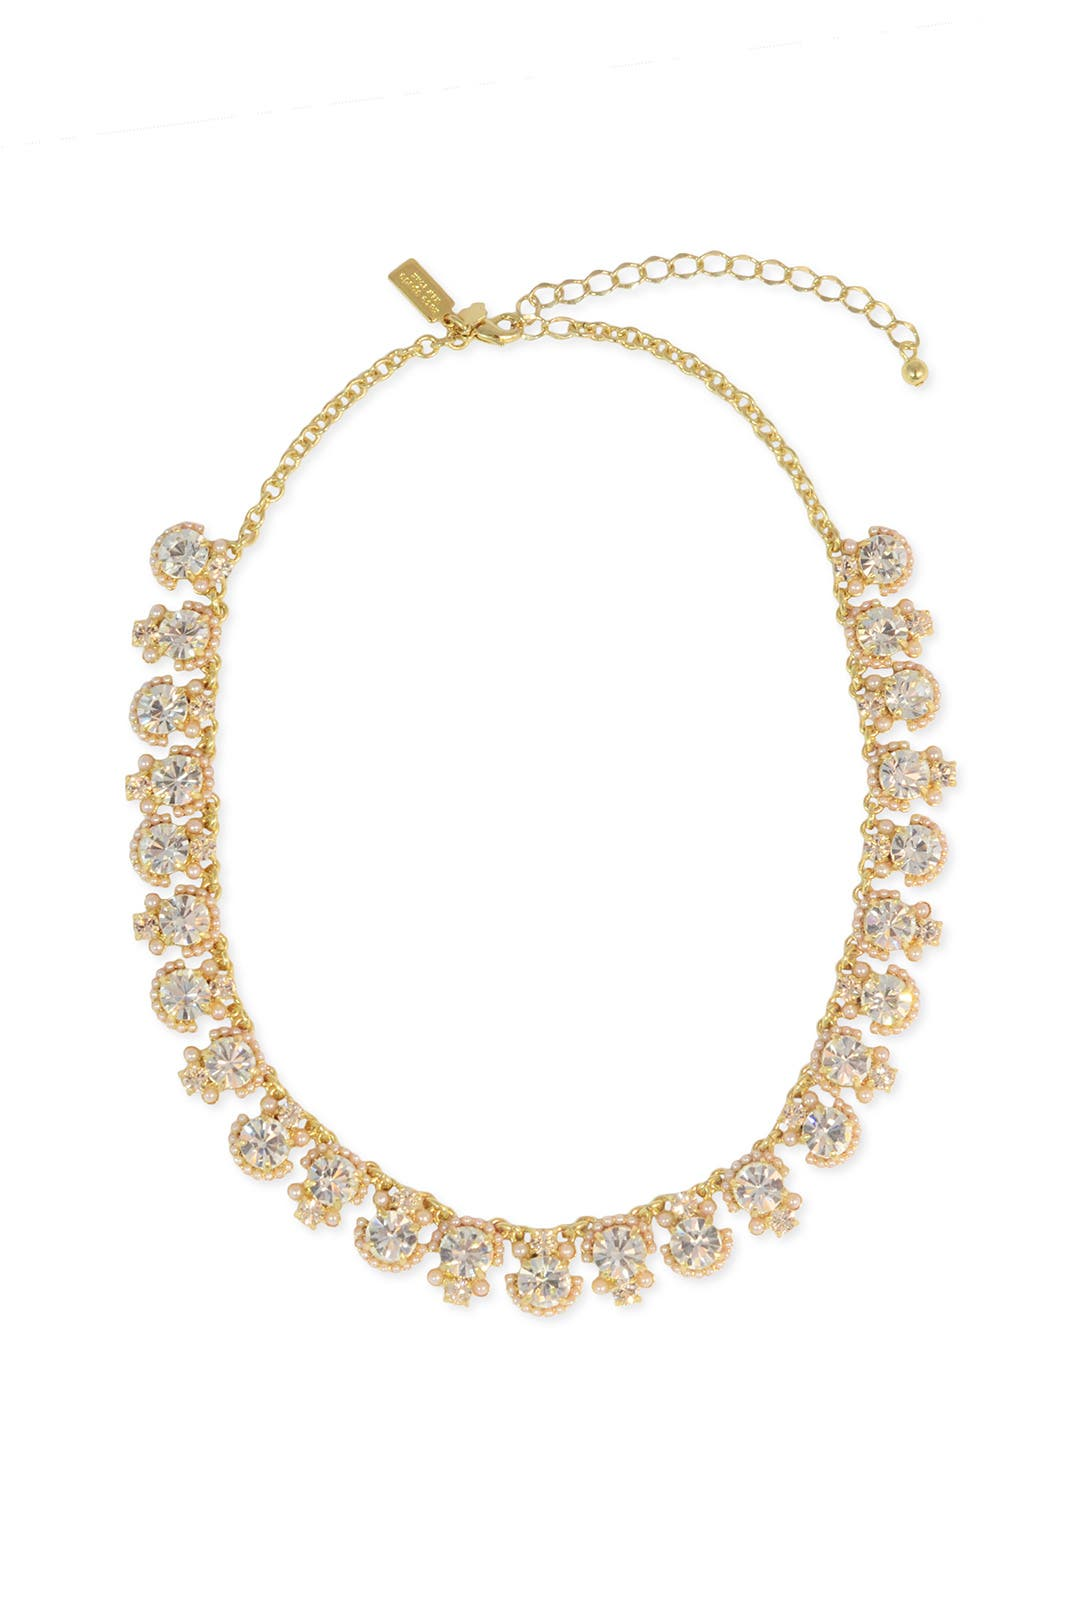 Garden Party Necklace by kate spade new york accessories